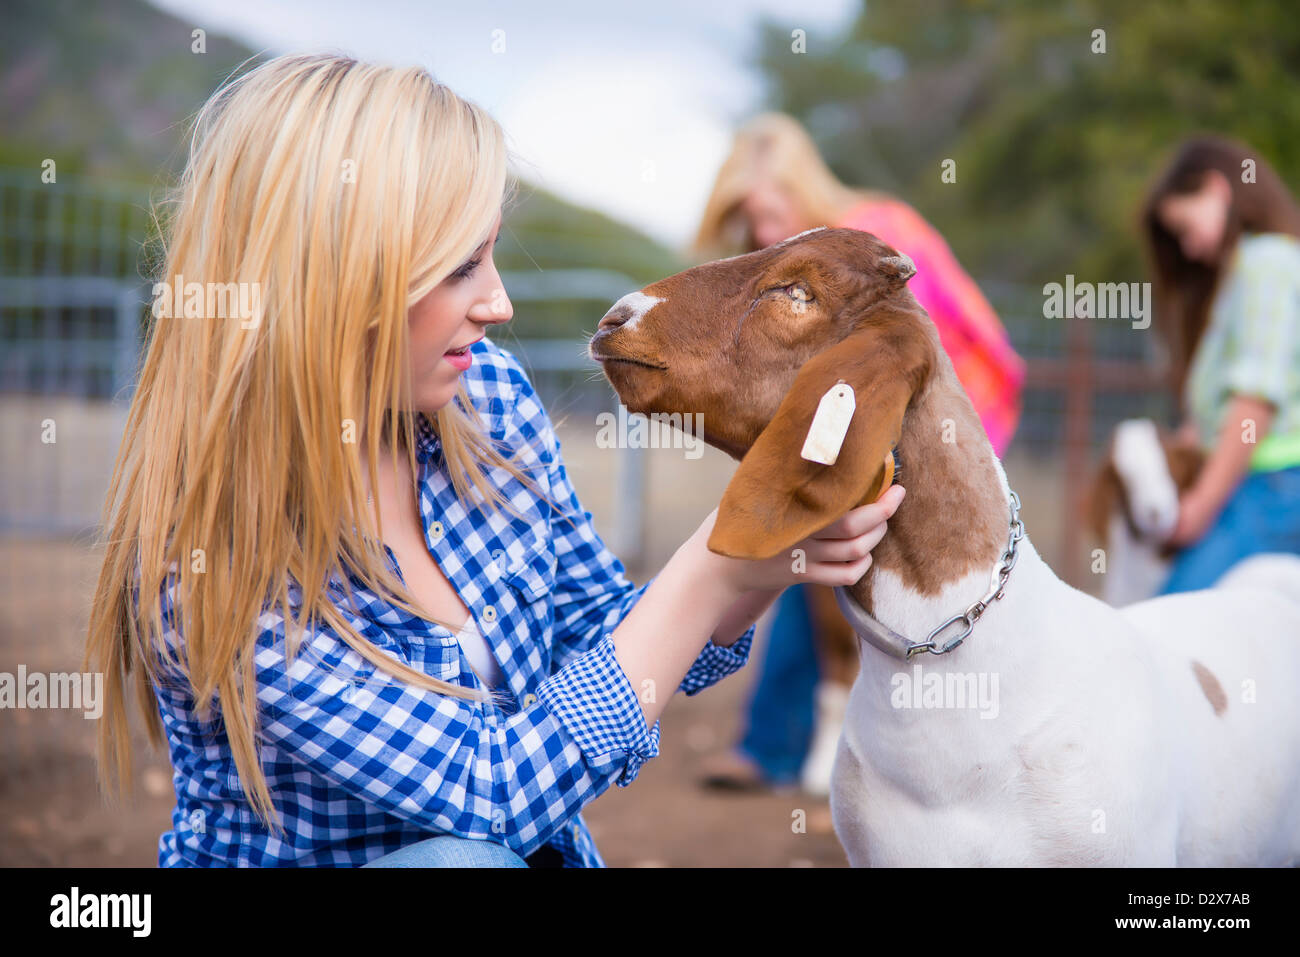 Children on livestock farm taking care of animals - Stock Image